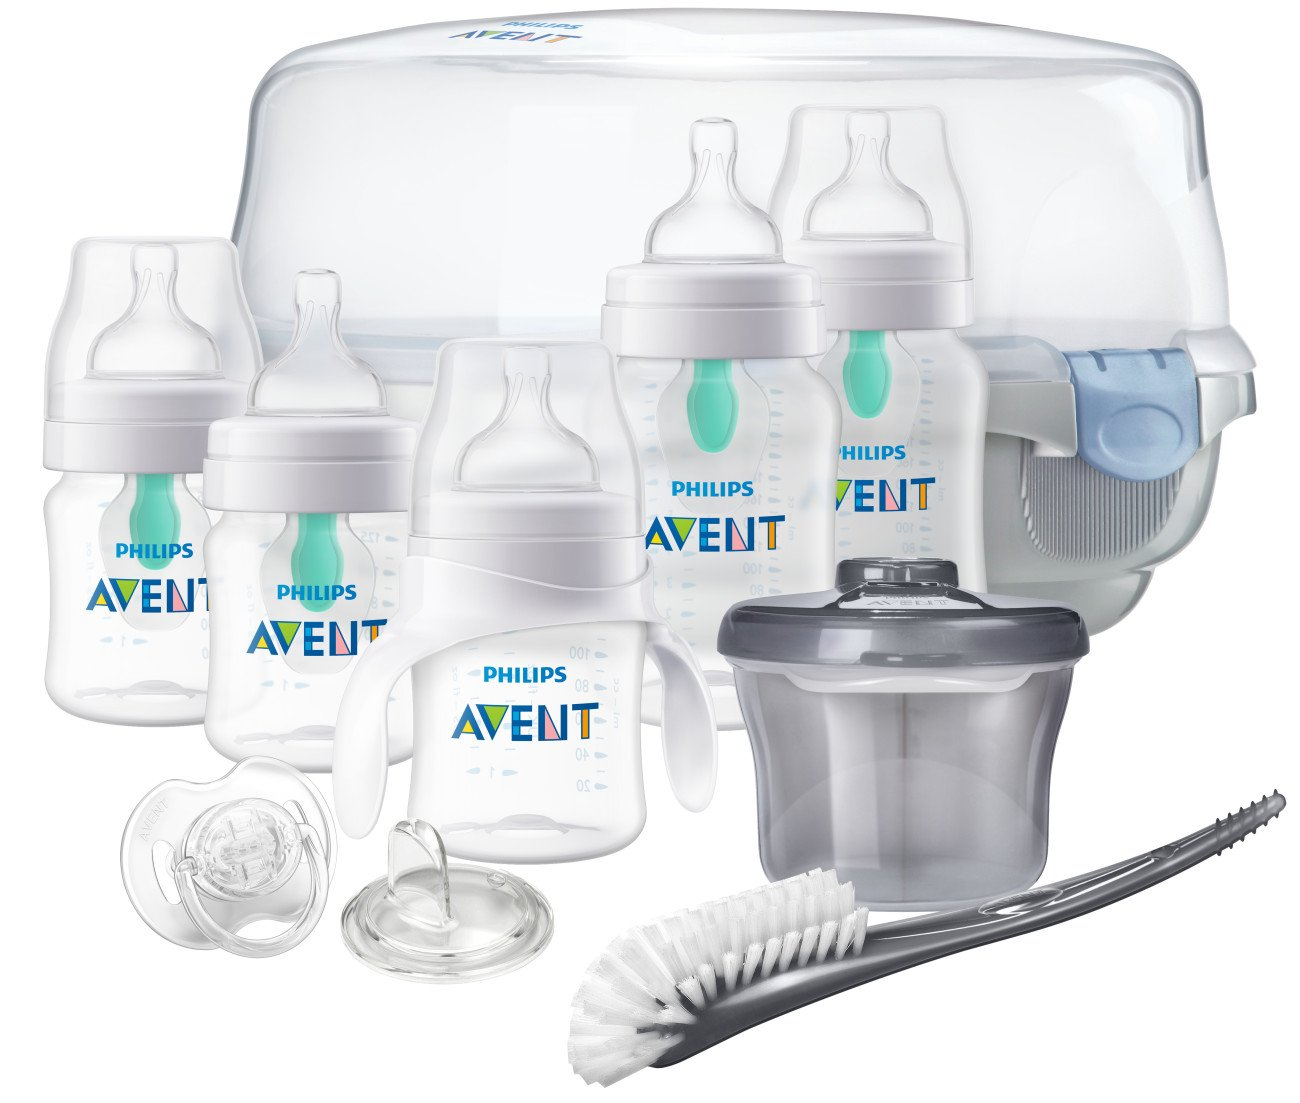 Philips Avent Anti-Colic Baby Bottle with AirFree Vent Gift Set Essentials, SCD398/02 by Philips AVENT (Image #1)